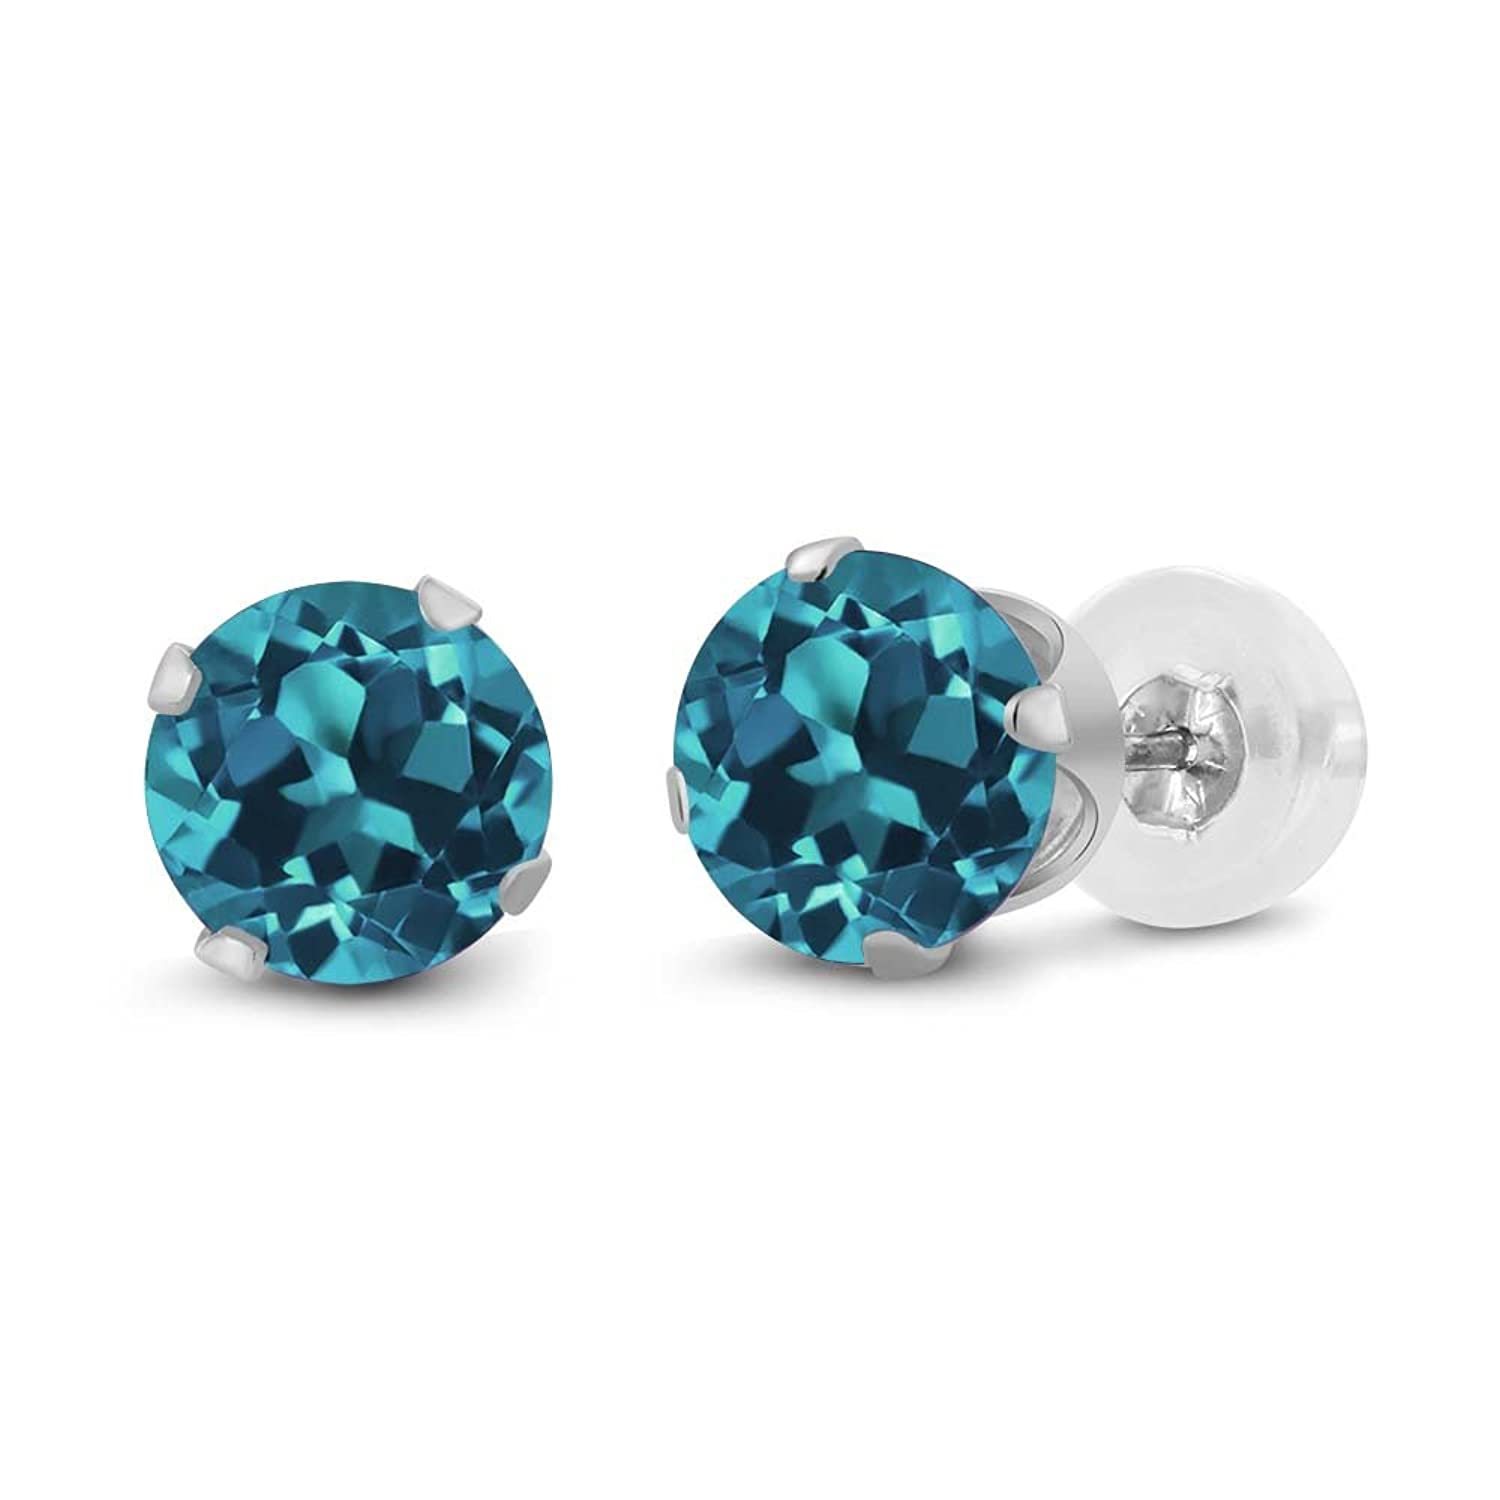 1.10 Ct Round Cut 5mm London Blue Topaz 14K White Gold Stud Women's Earrings